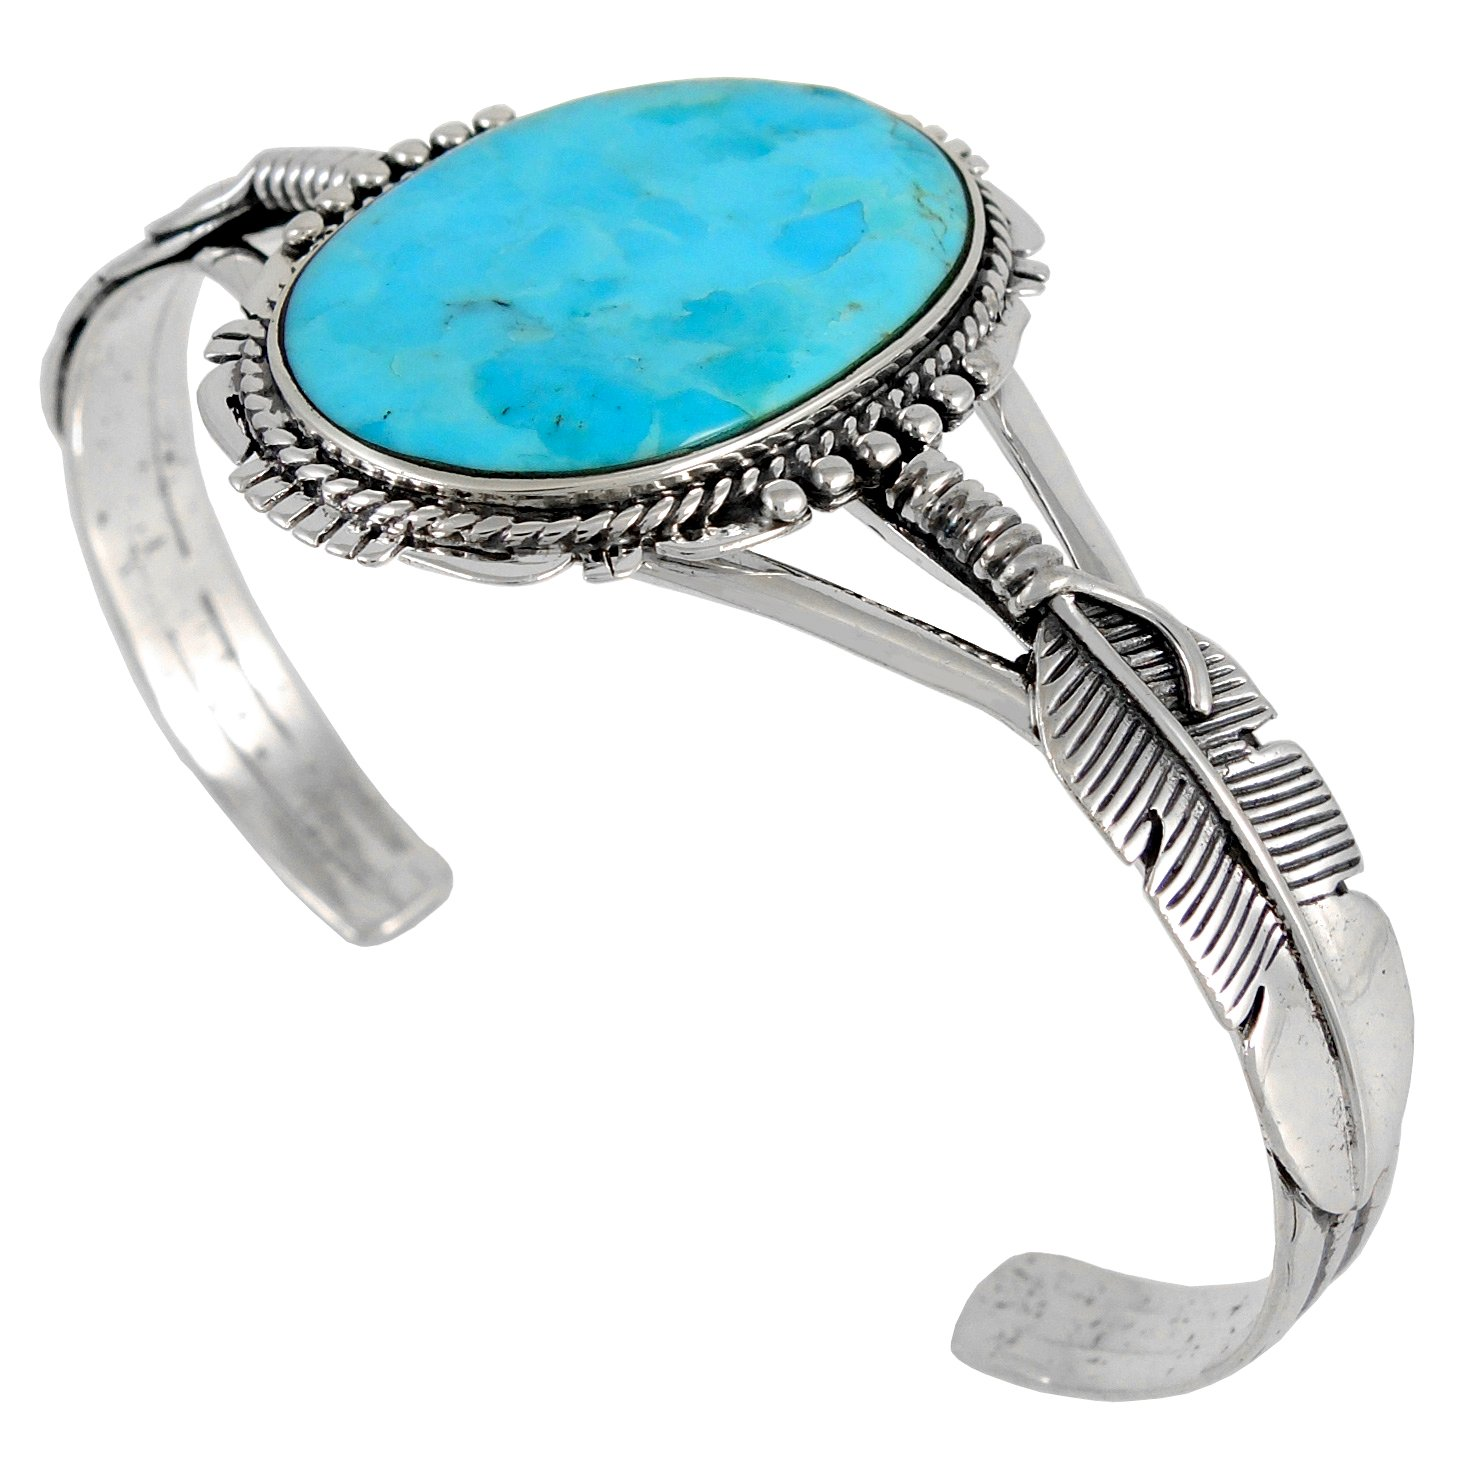 Turquoise Bracelet Sterling Silver 925 with Genuine Turquoise (Turquoise)